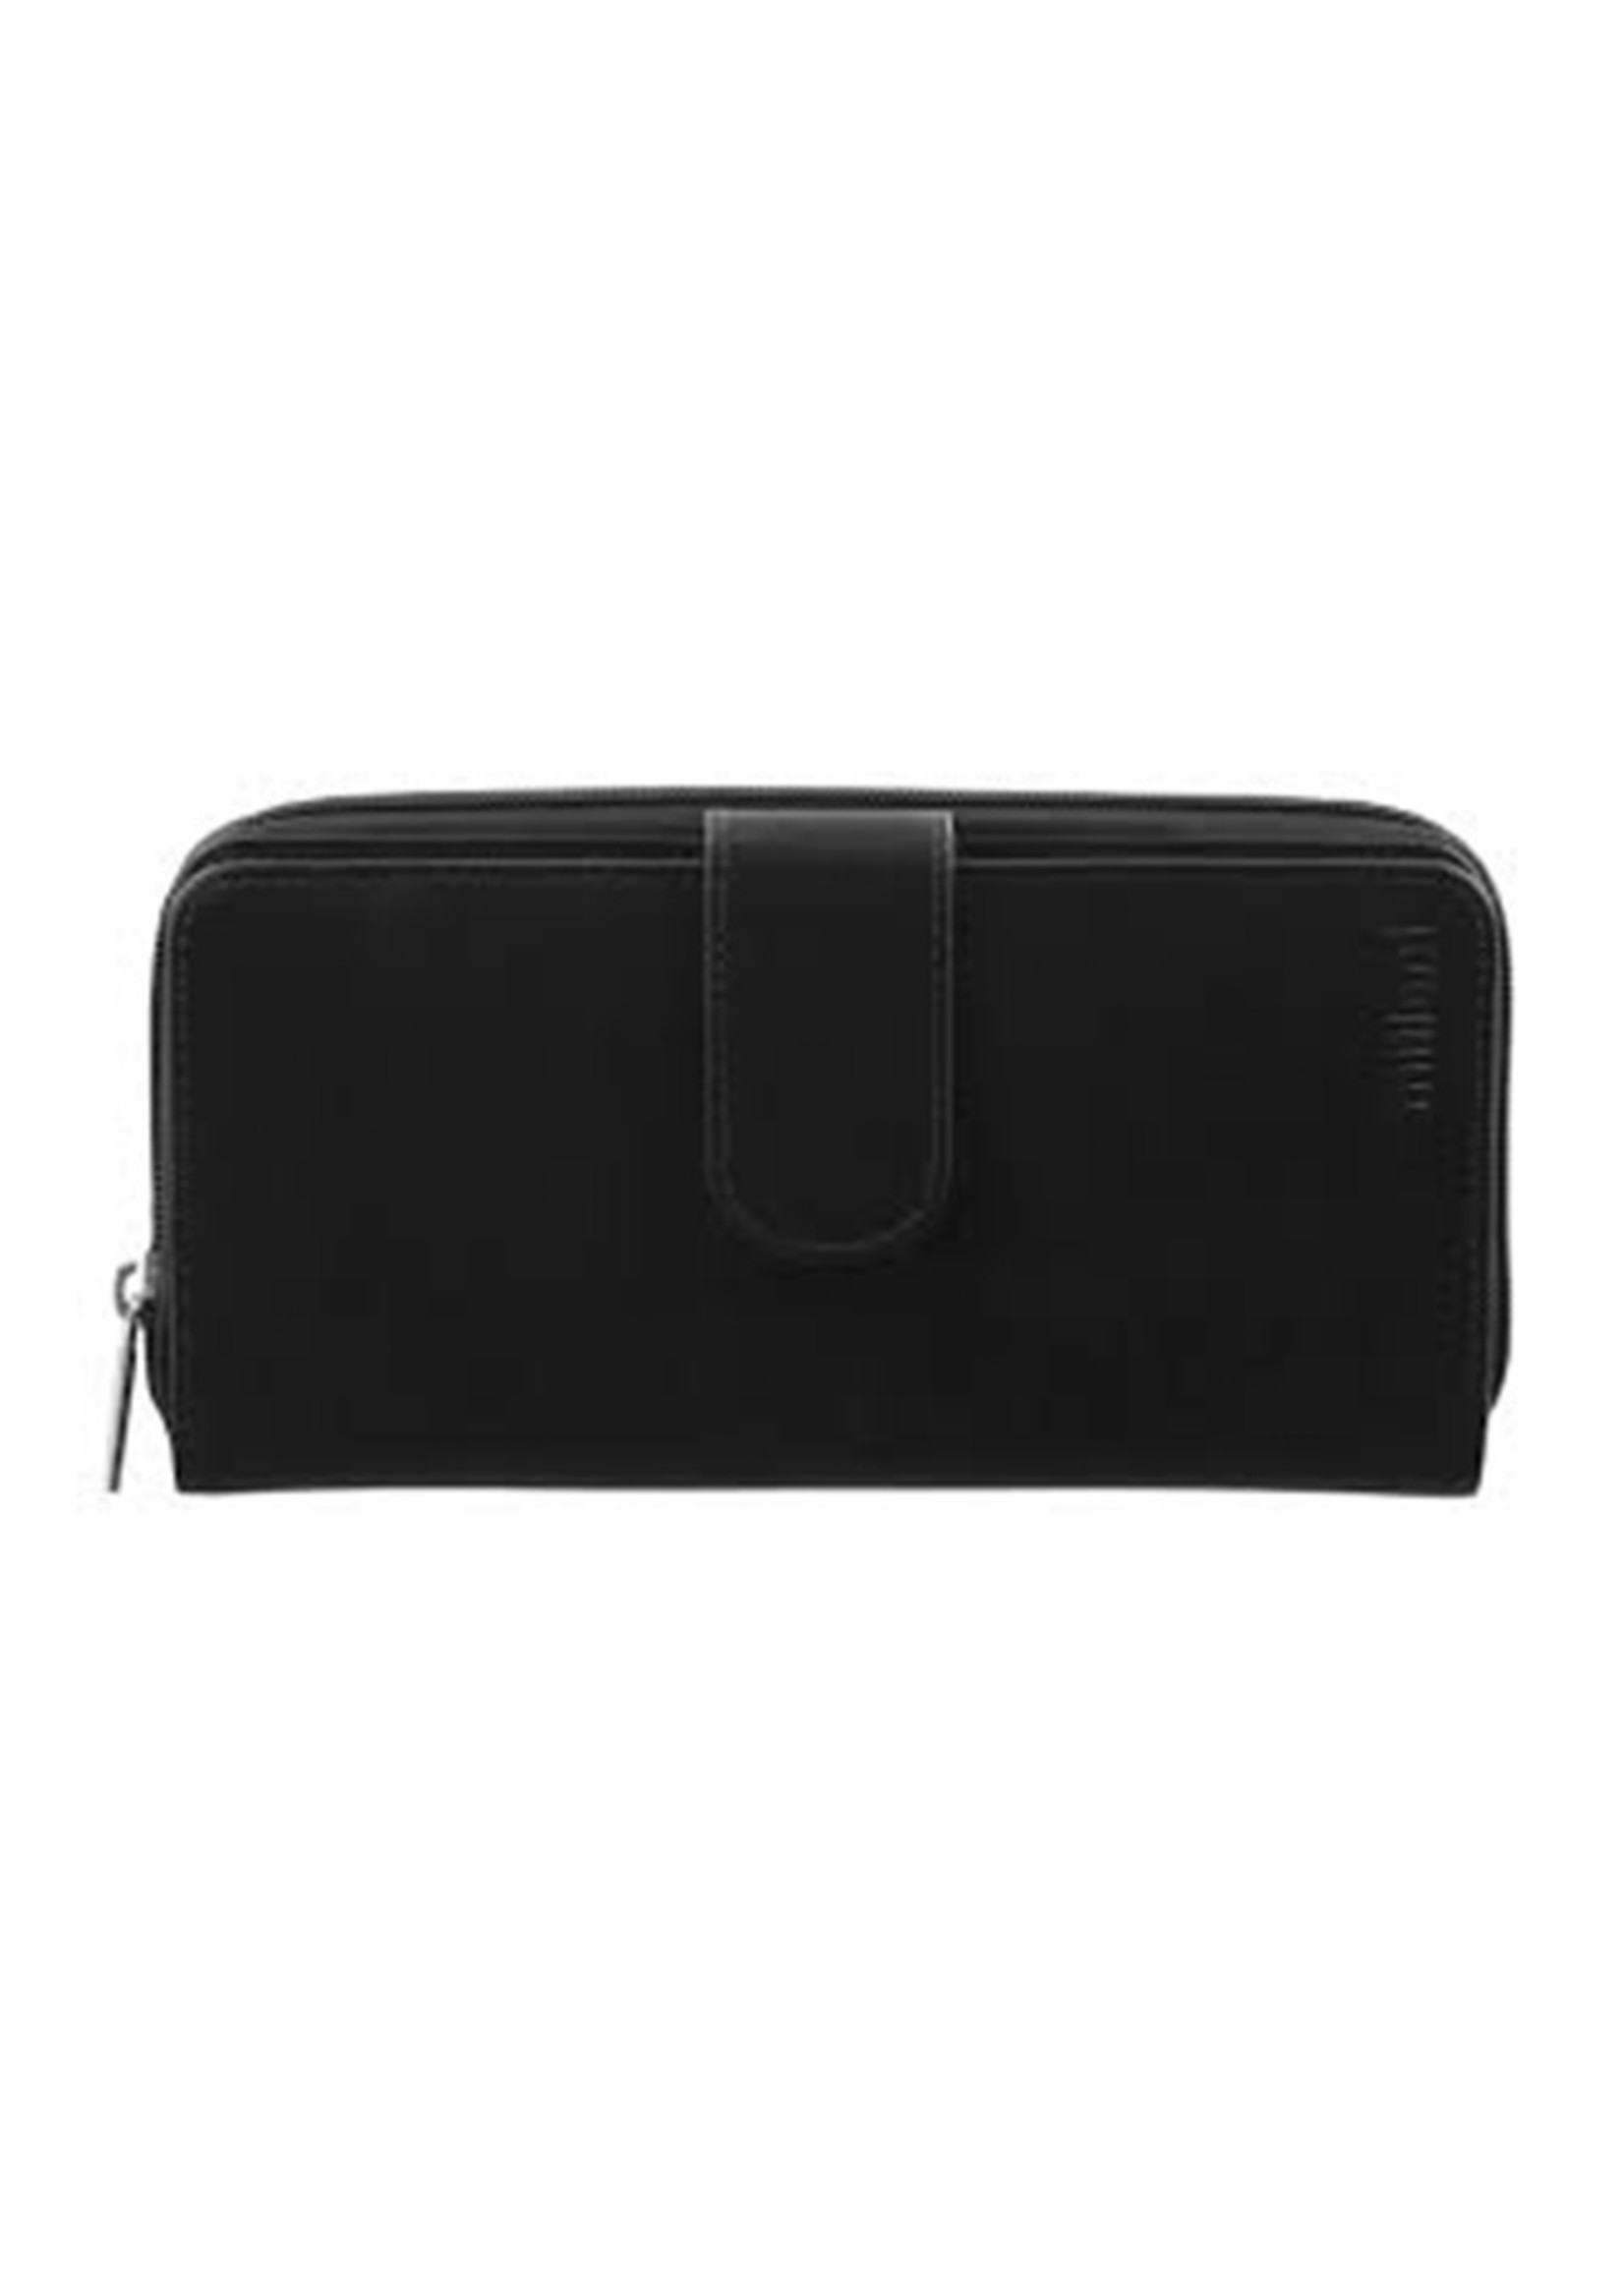 Milleni Leather Ladies Wallet - Black (C2885)